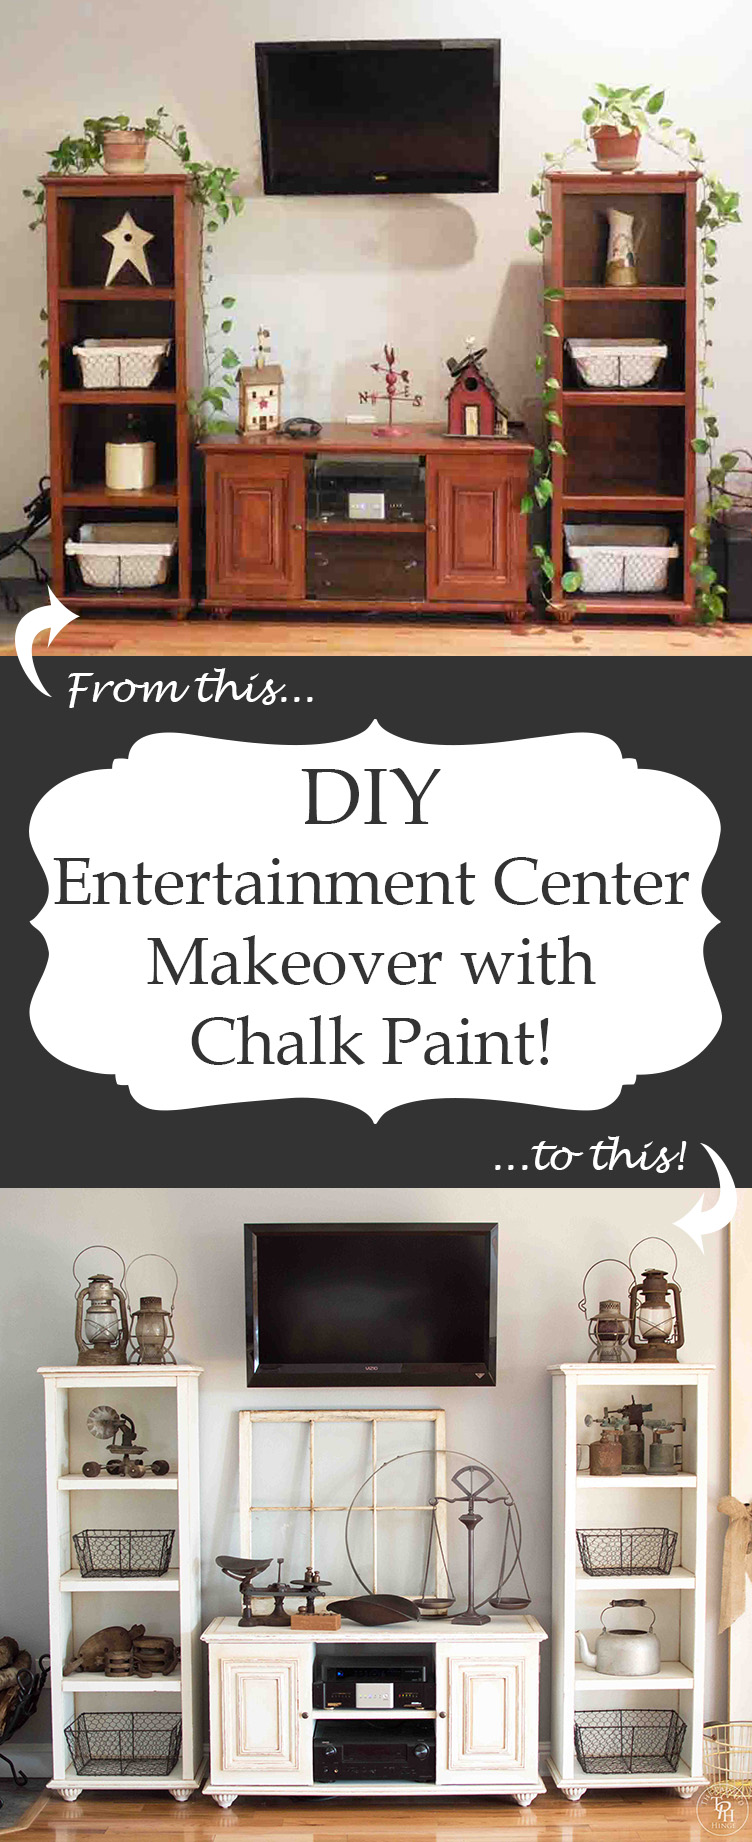 DIY Entertainment Center Makeover